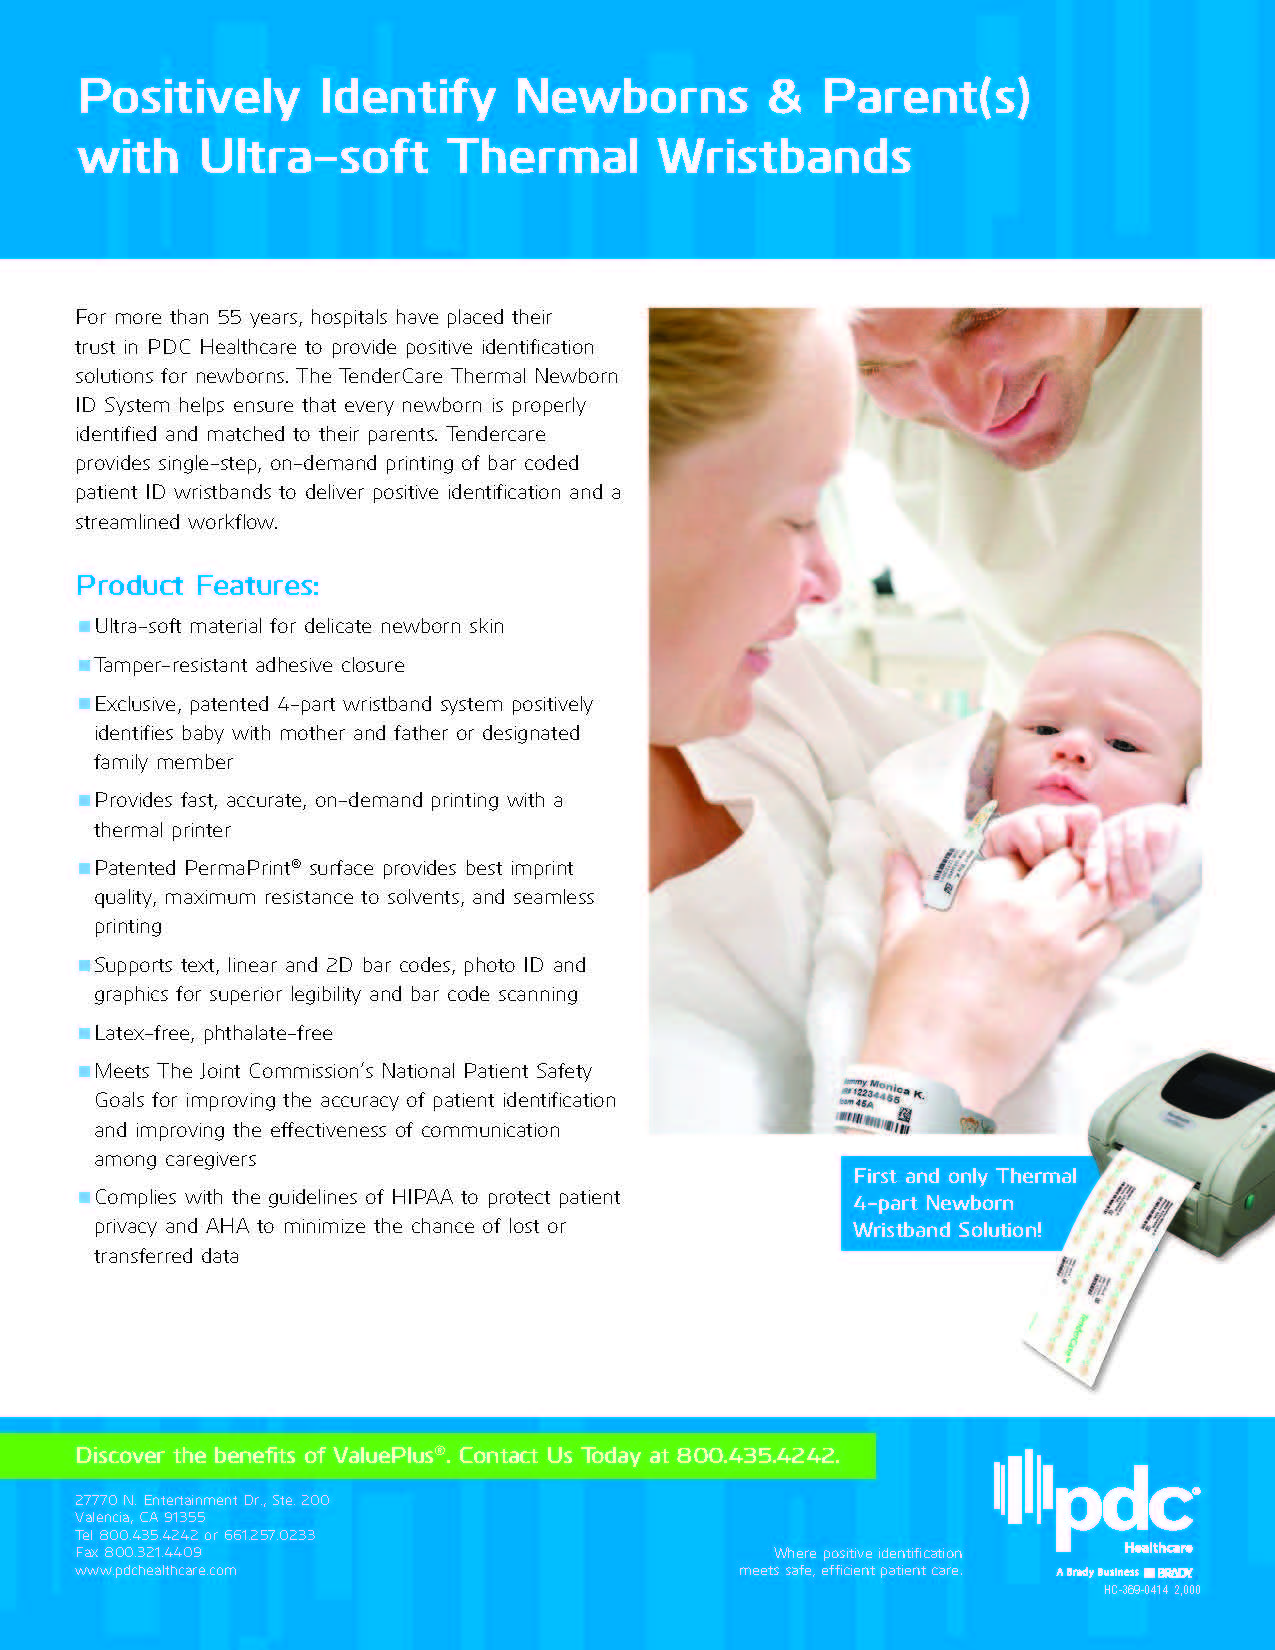 TenderCare Thermal Newborn ID System